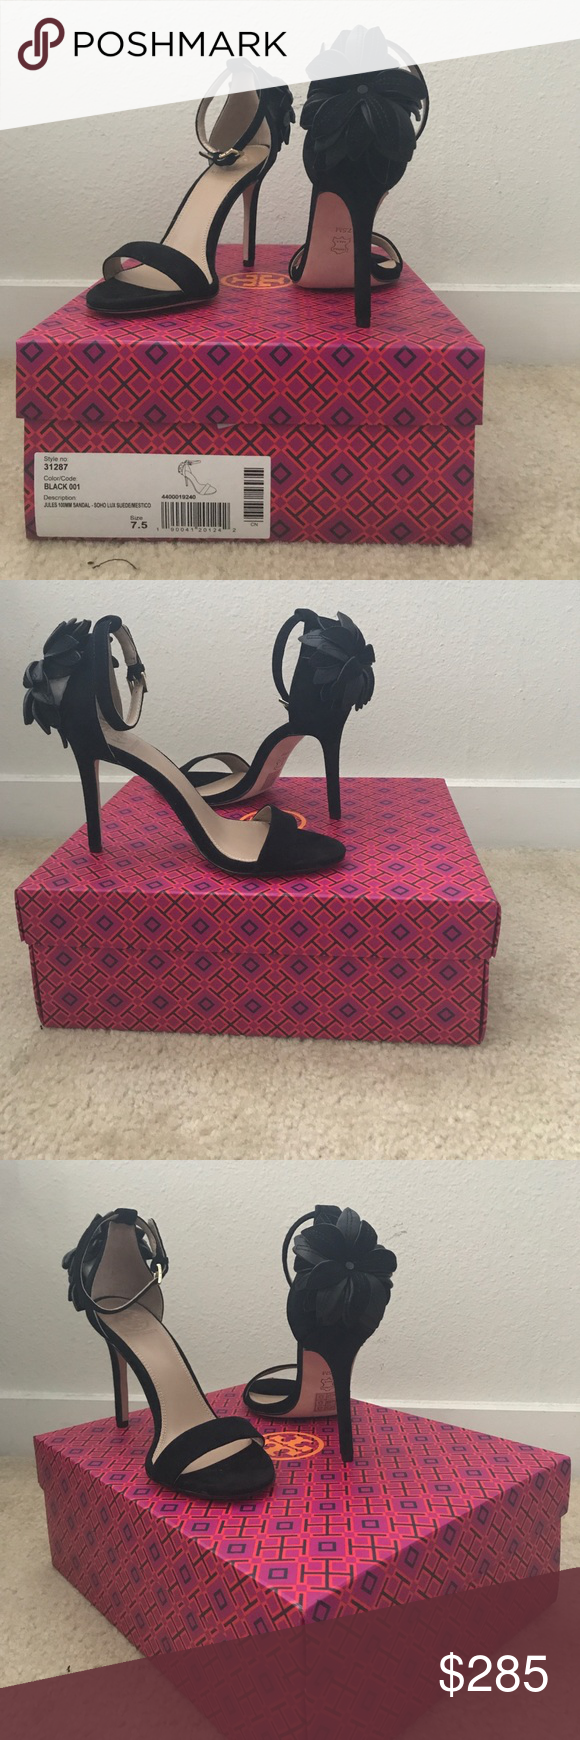 87d6491a2 Tory Burch SOHO Lux Suede Jules 100MM Sandal BRAND NEW! NEVER worn heel  from their